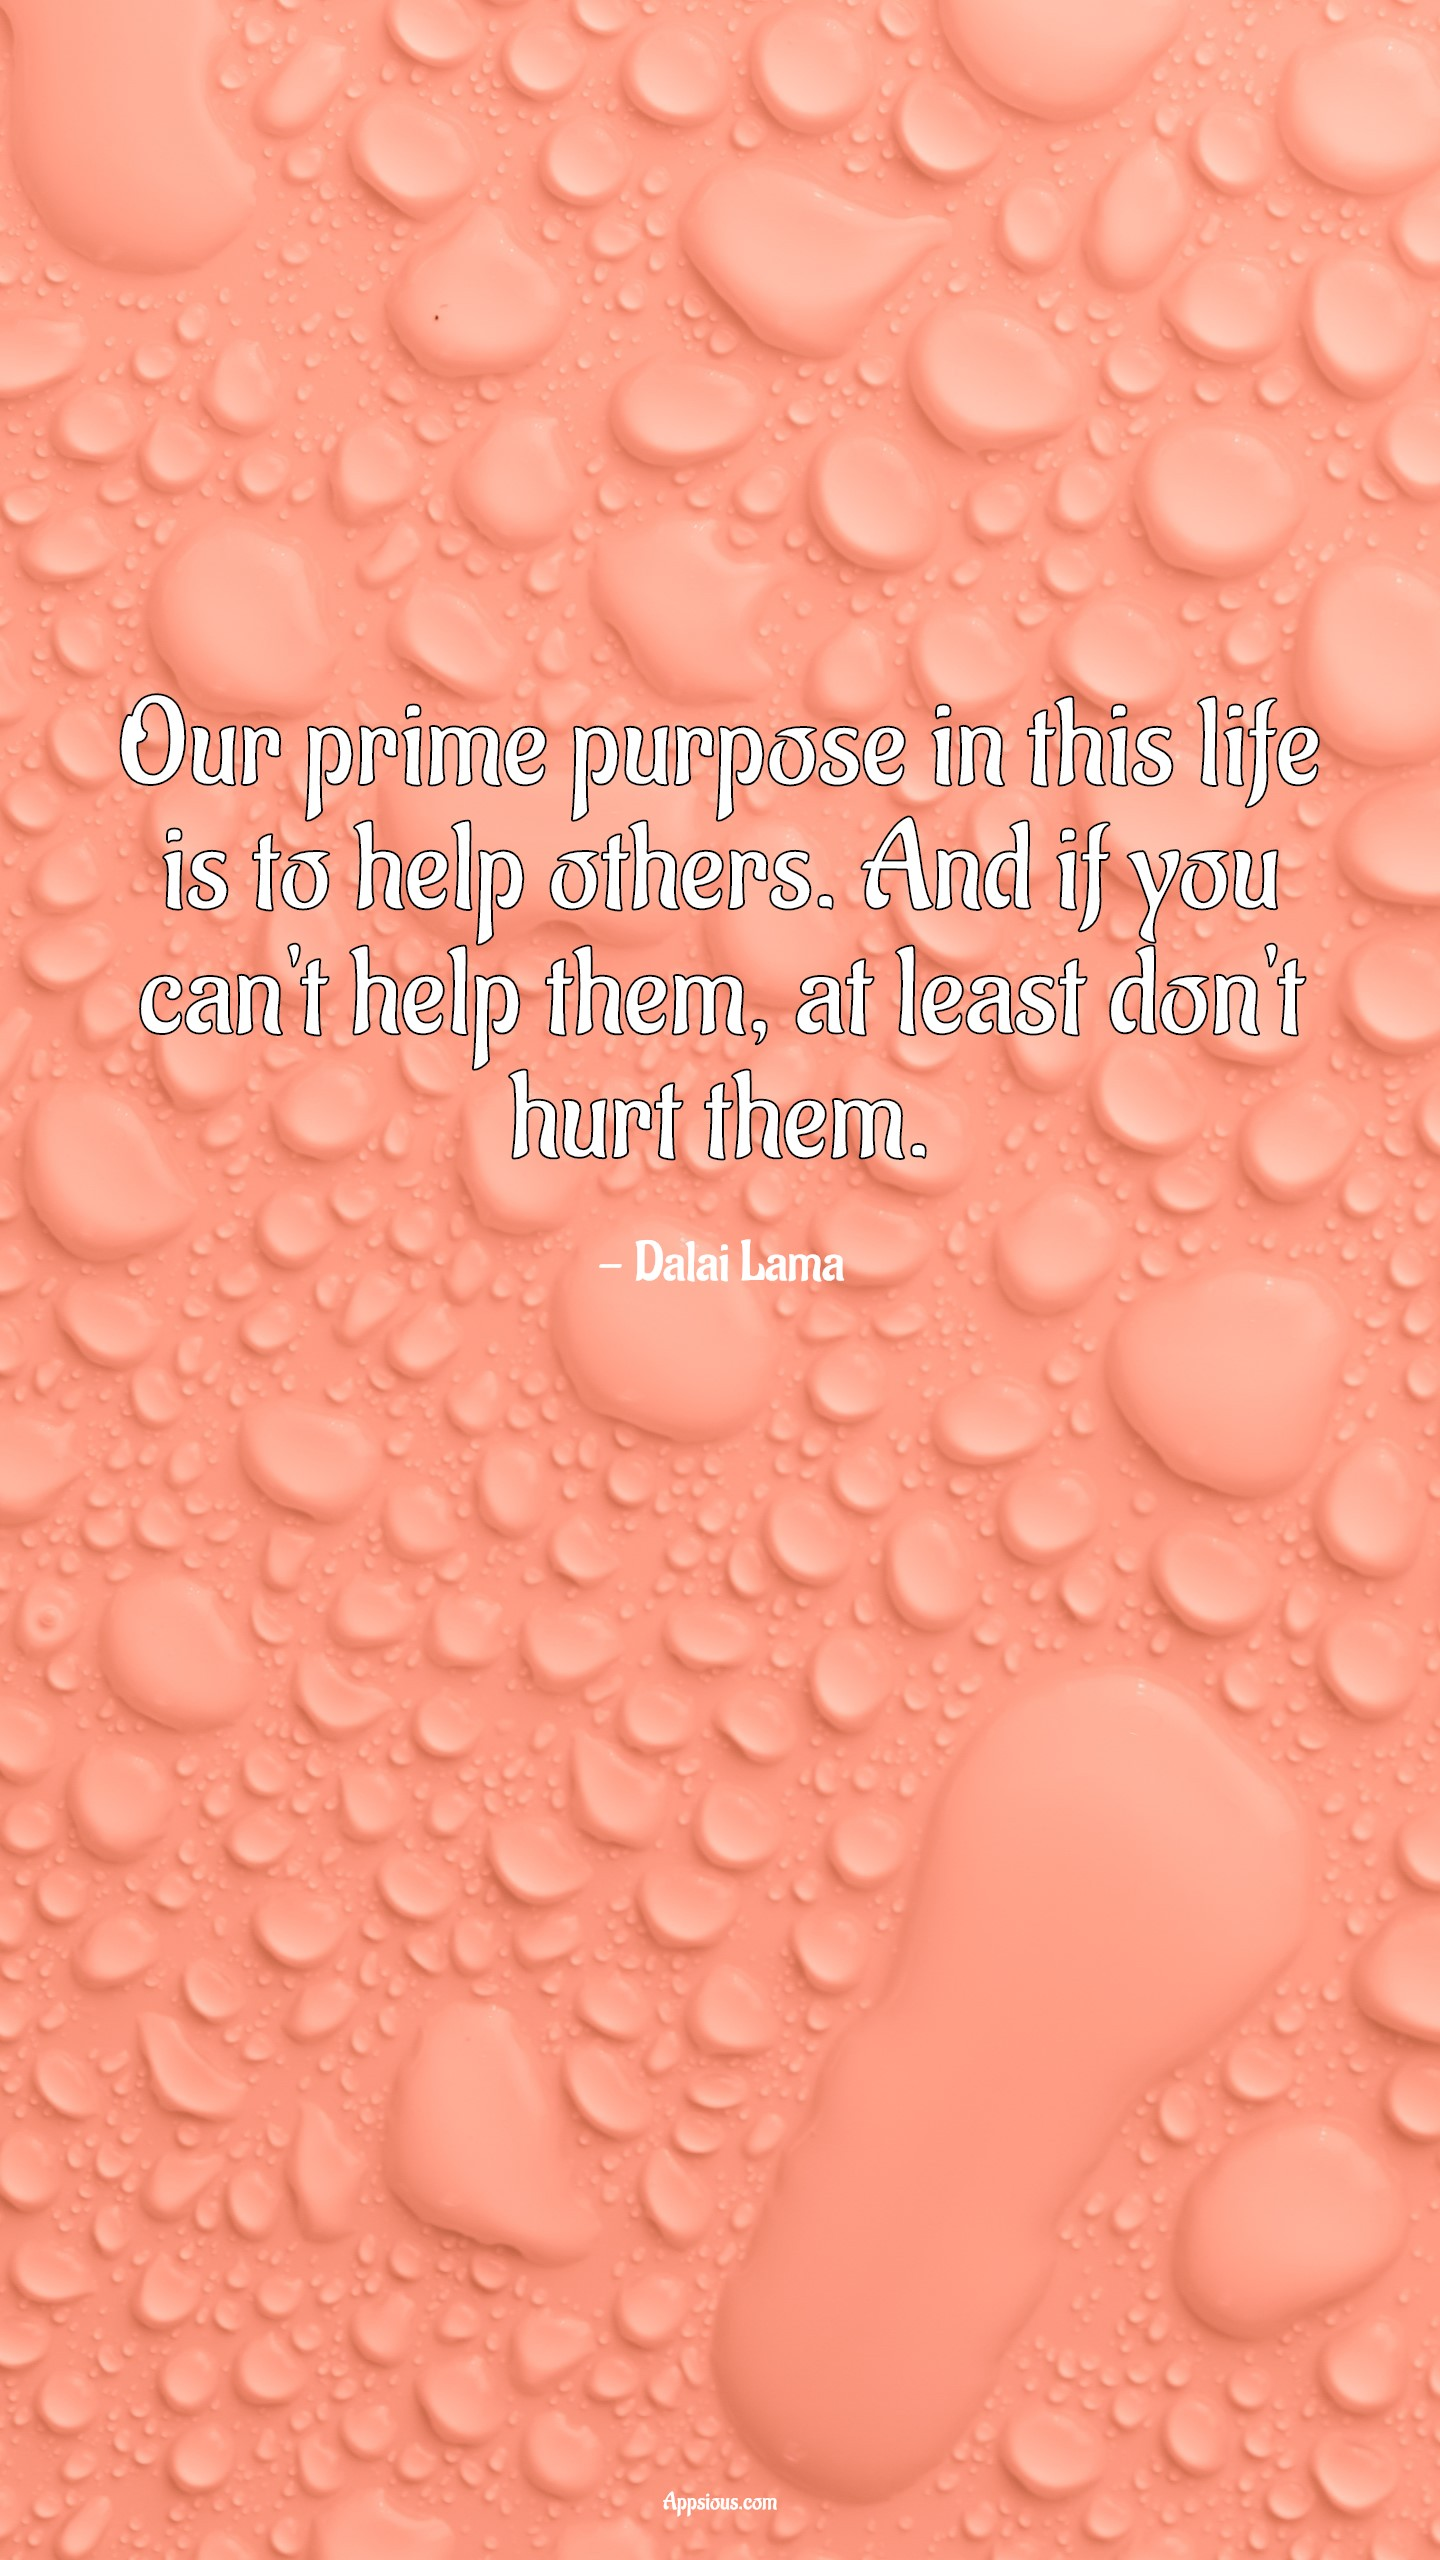 Our prime purpose in this life is to help others. And if you can't help them, at least don't hurt them.